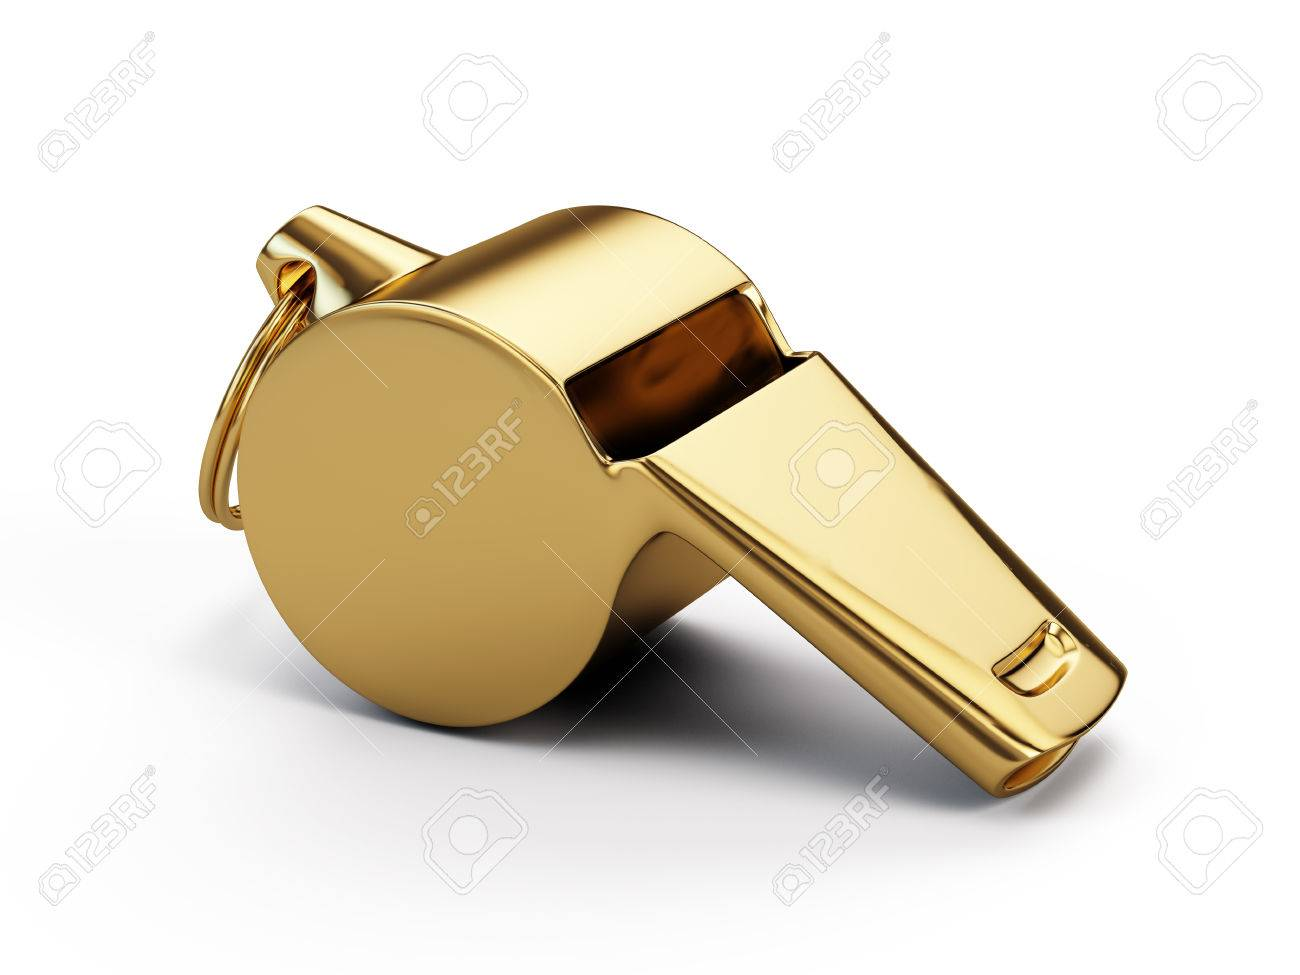 Gold whistle isolated on white - 58603380